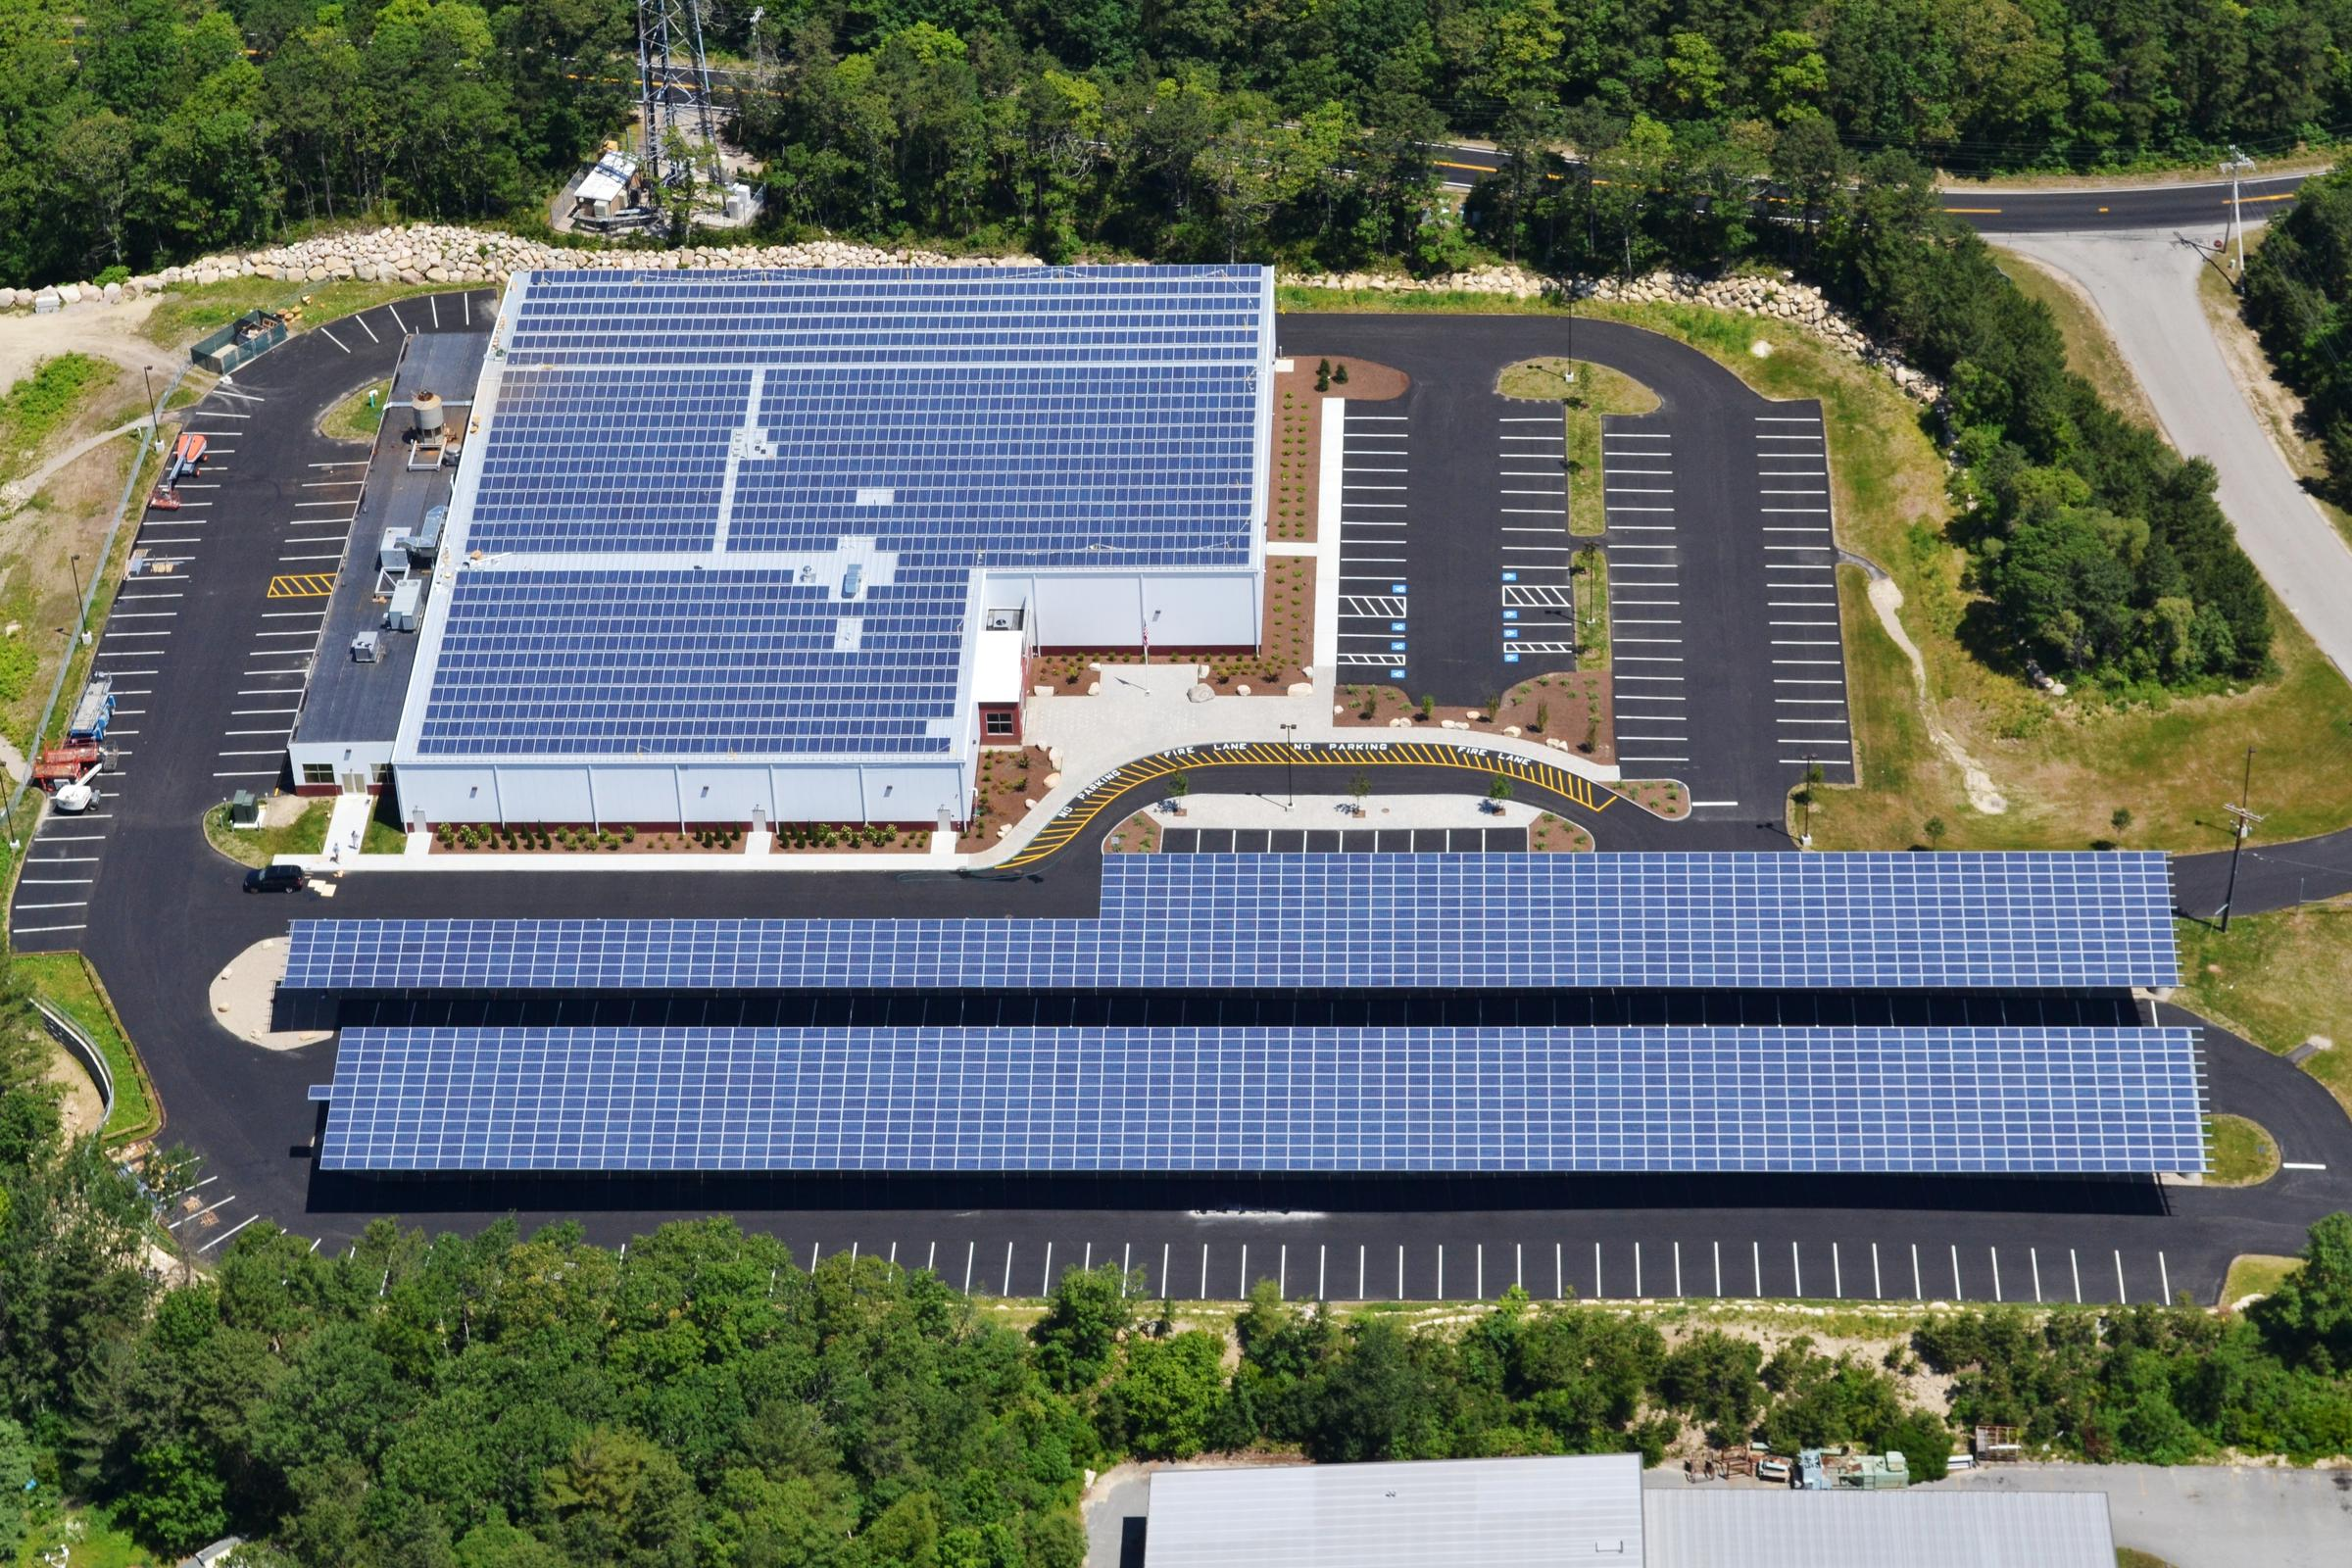 Not Only Does The Newly Constructed Falmouth Ice Arena Have 3 300 Solar Panels On Its Roof And Two Car Ports It Also Is Most Energy Efficient Building